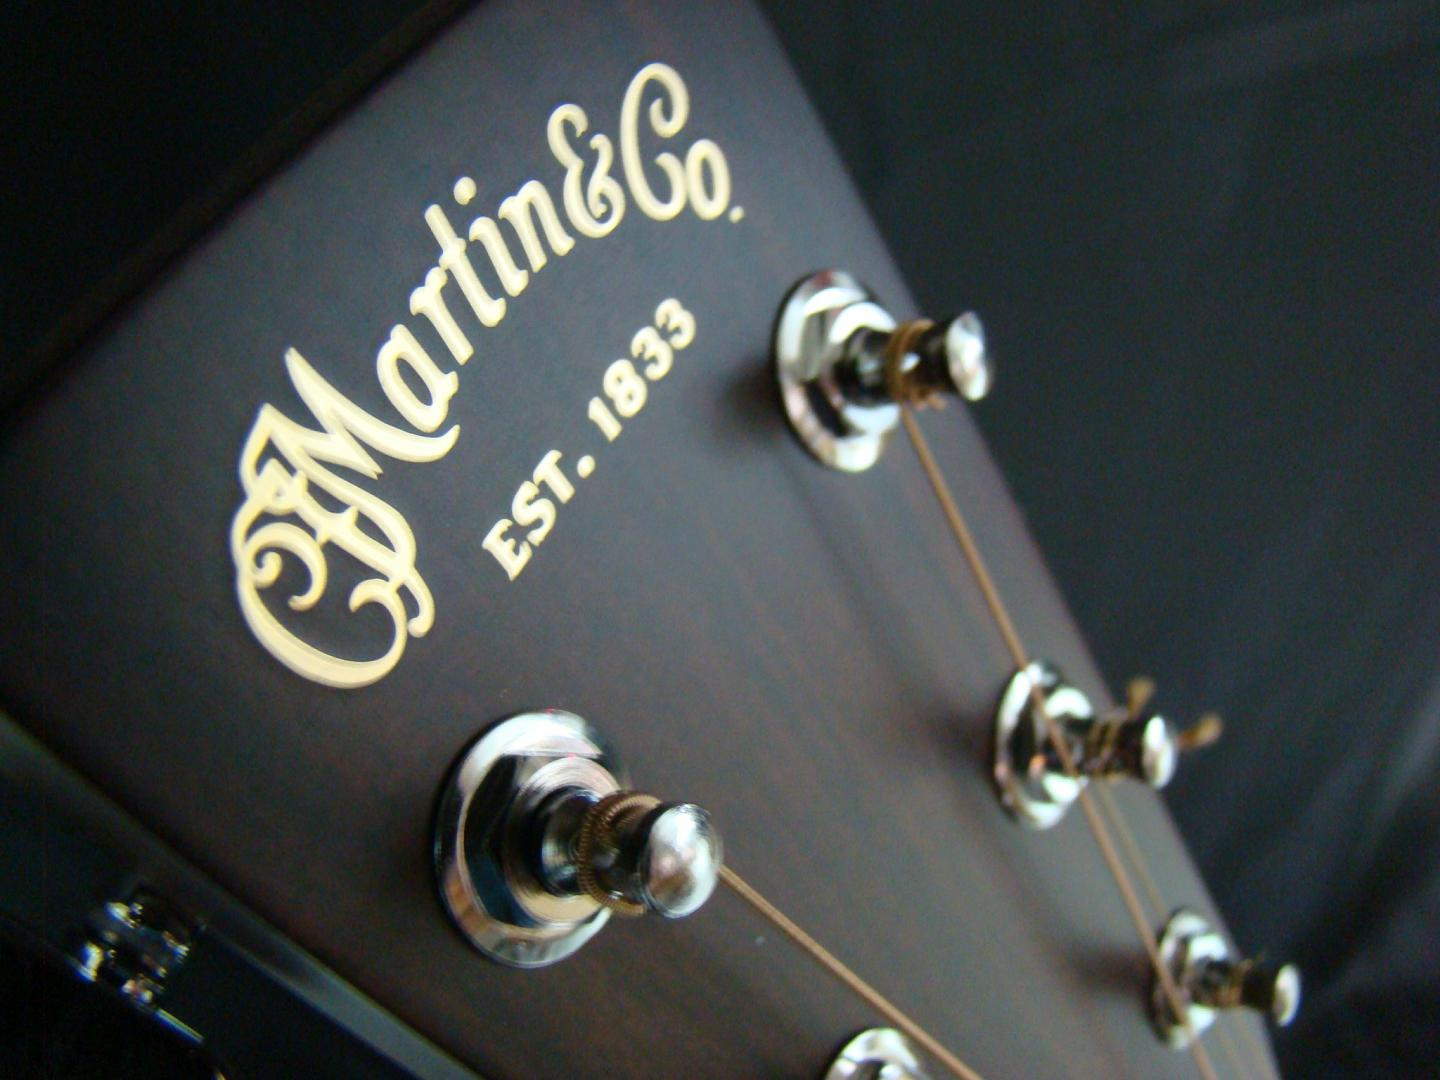 MARTIN D18 GUITARE ACOUSTIQUE **MADE IN USA** NATURELLE VERNIE. TABLE EPICEA MASSIF. MANCHE ACAJOU MASSIF. TOUCHE & CHEVALET EBENE. DOS ECLISSES ACAJOU MASSIF. MECANIQUE CHROME MARTIN PLAQUE ECAILLE. ¤¤AVEC ETUI¤¤